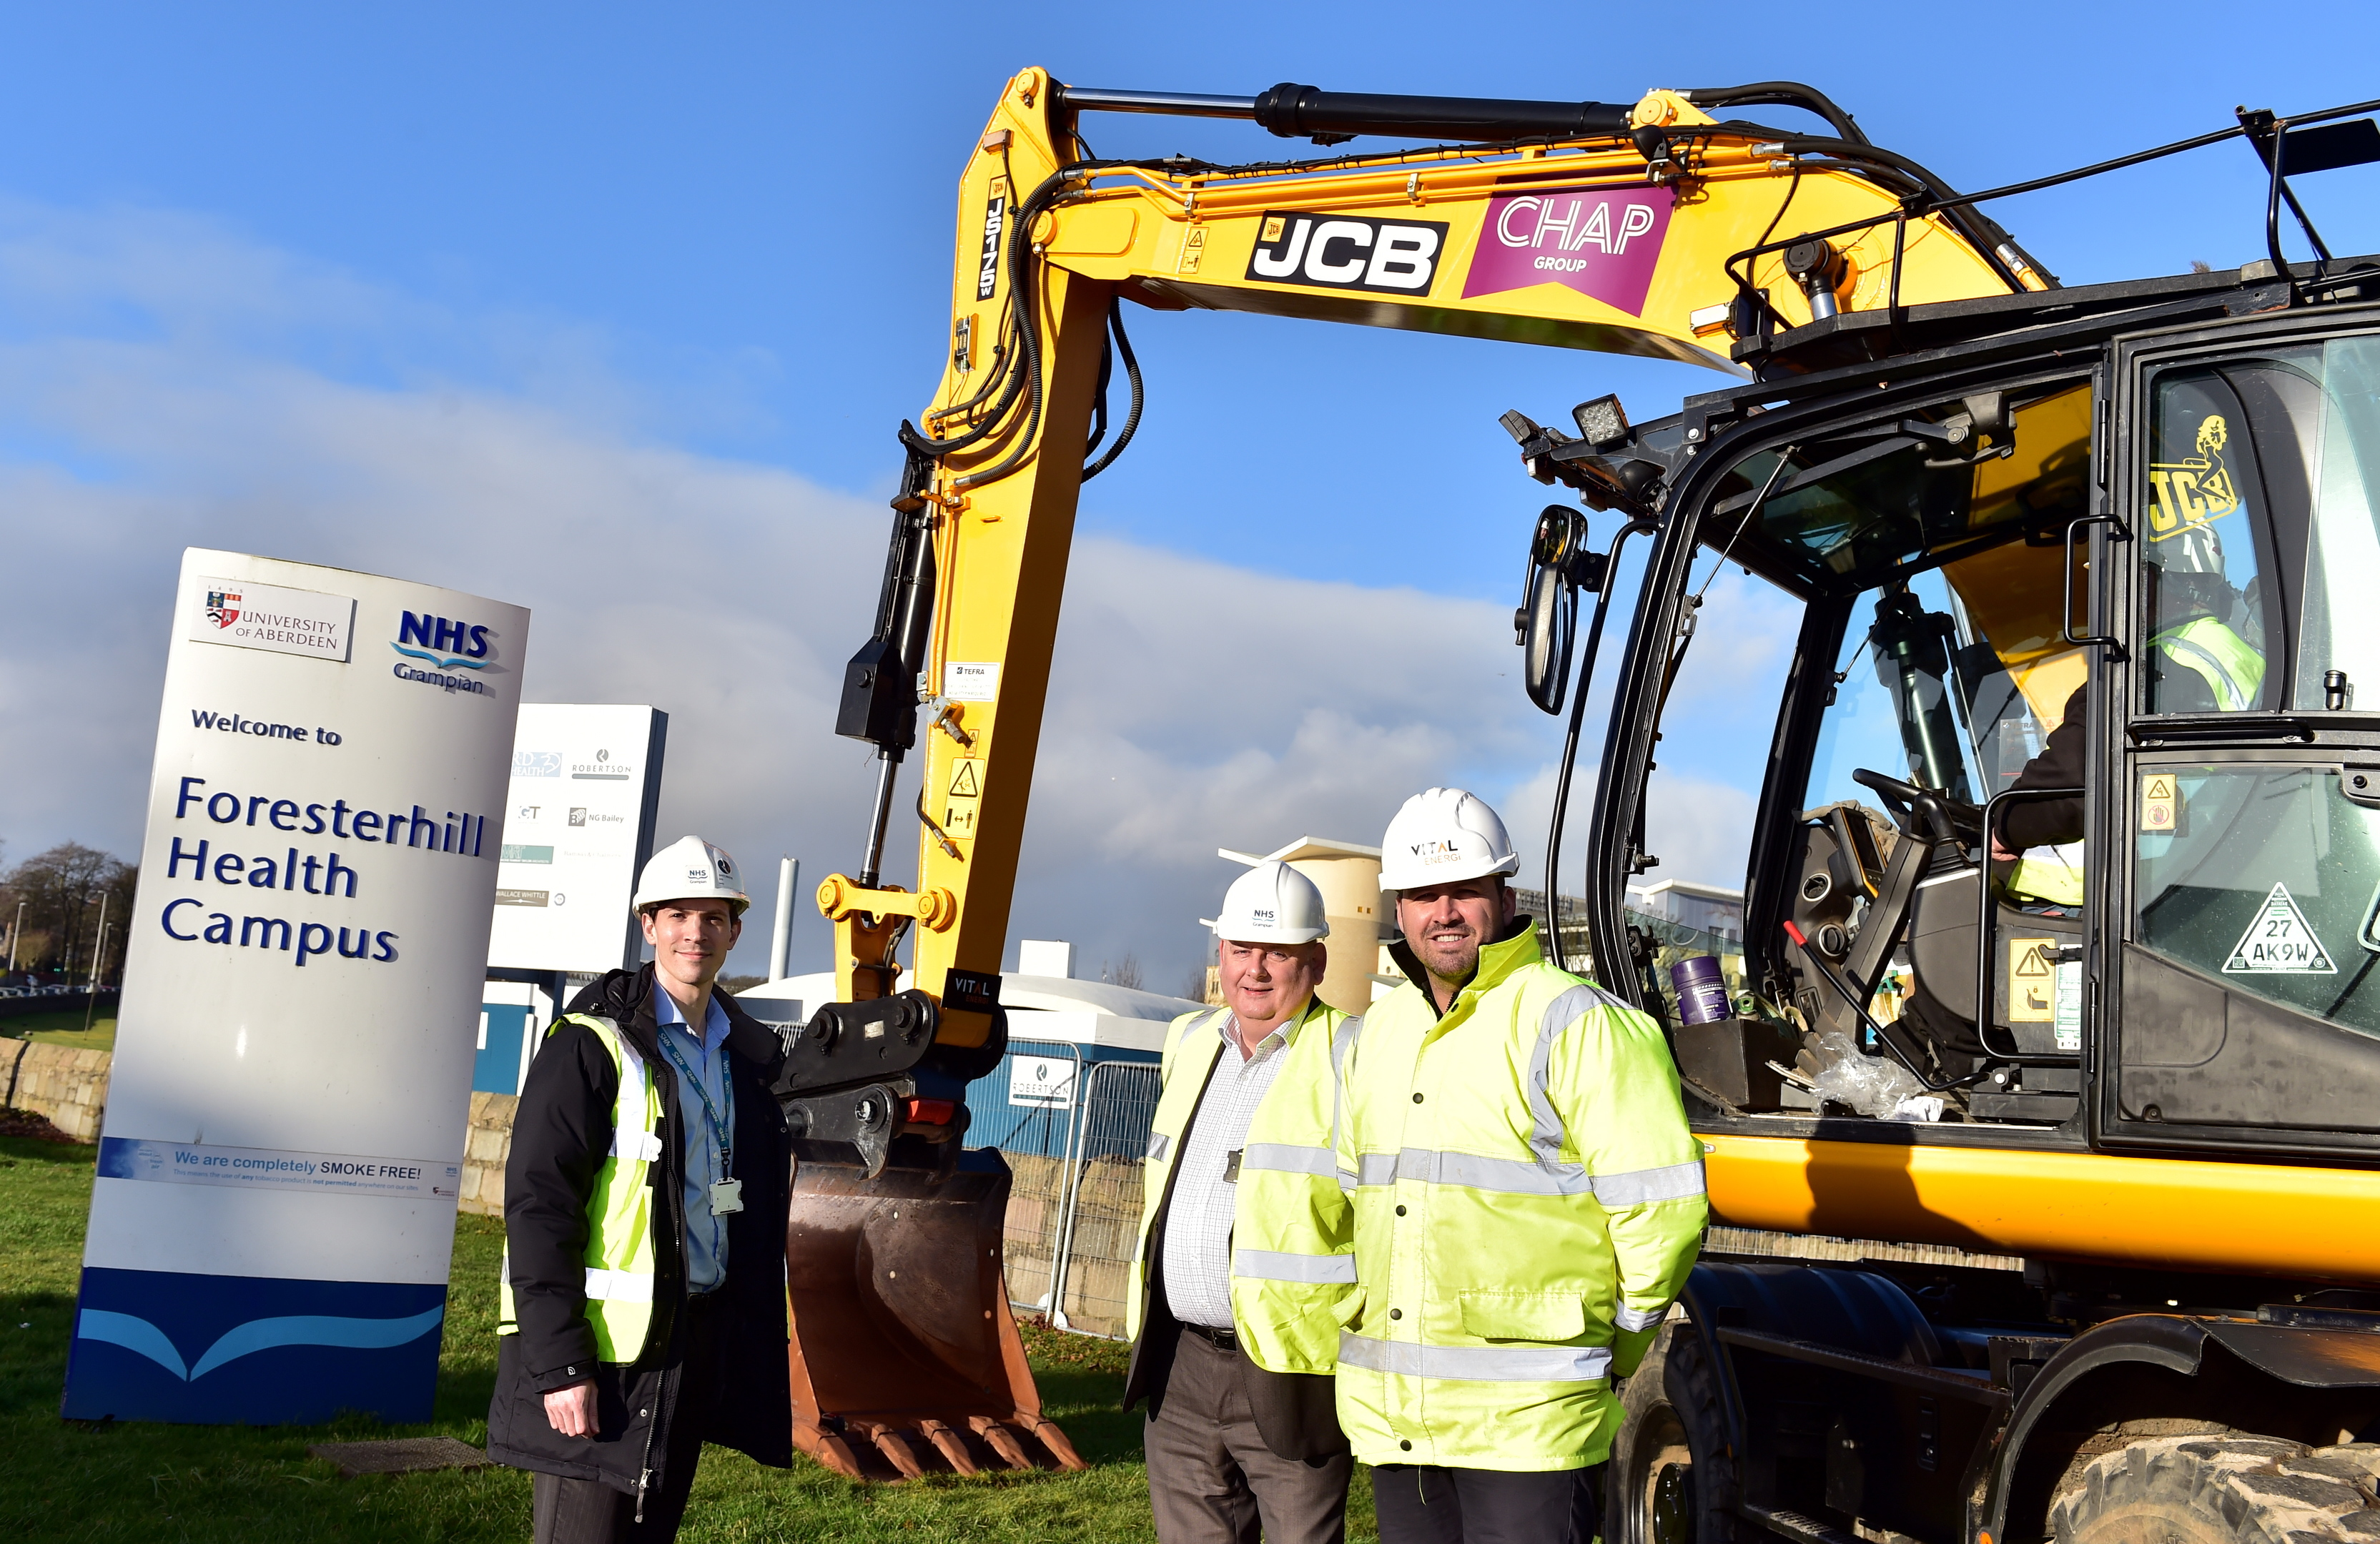 From left, Robert Hobkirk and Graham Mutch of the  NHS and Daniel Glynn of Vital Energy.